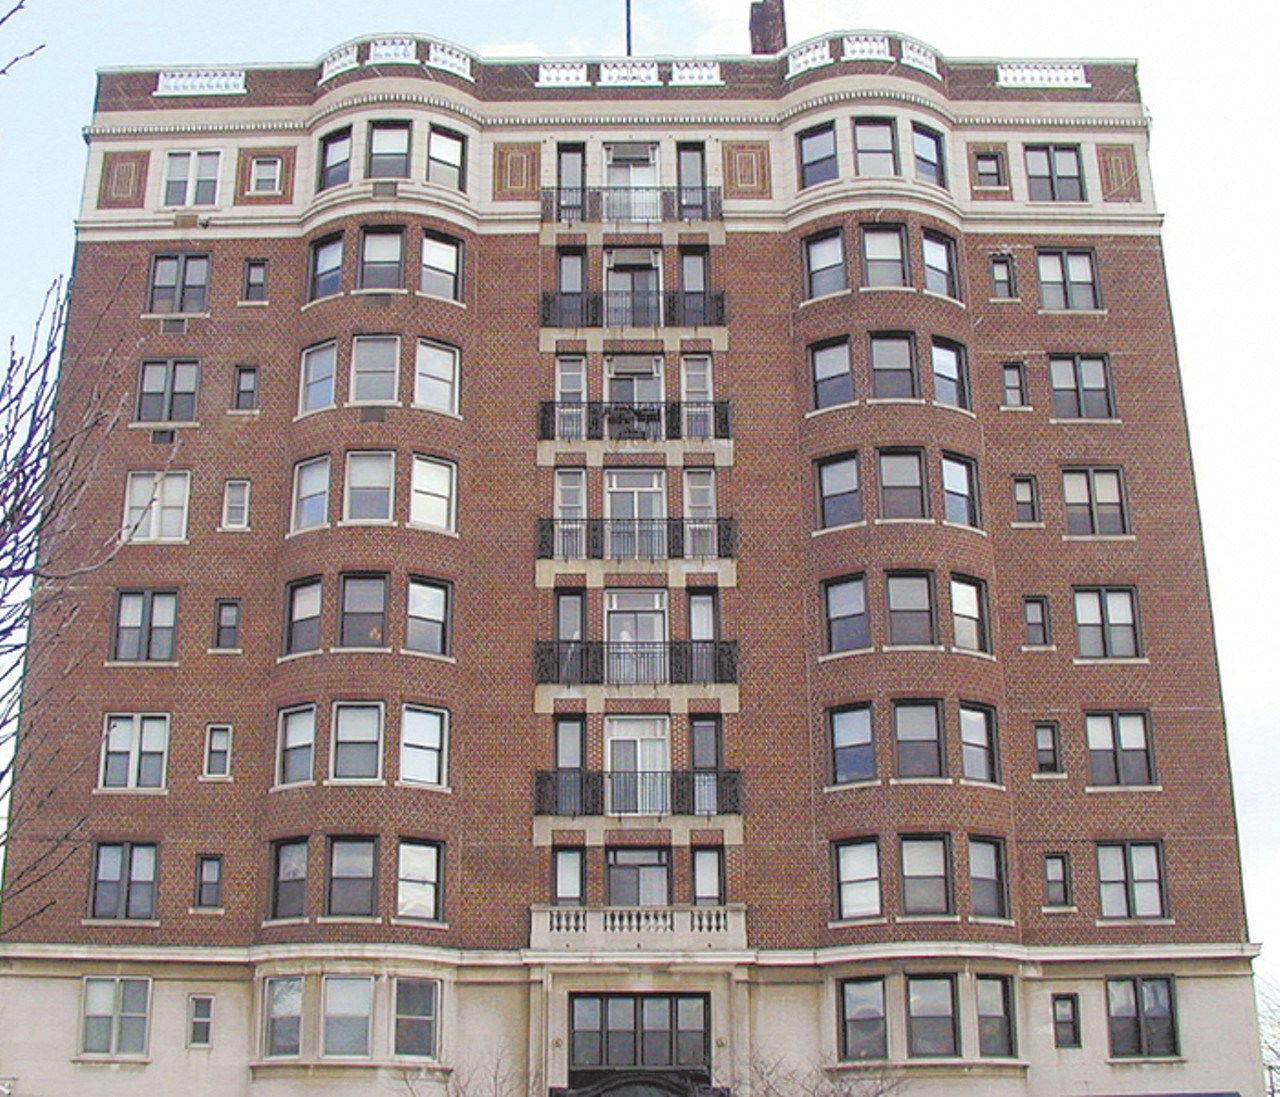 Apartement: A Look At Detroit's Garden Court Apartments